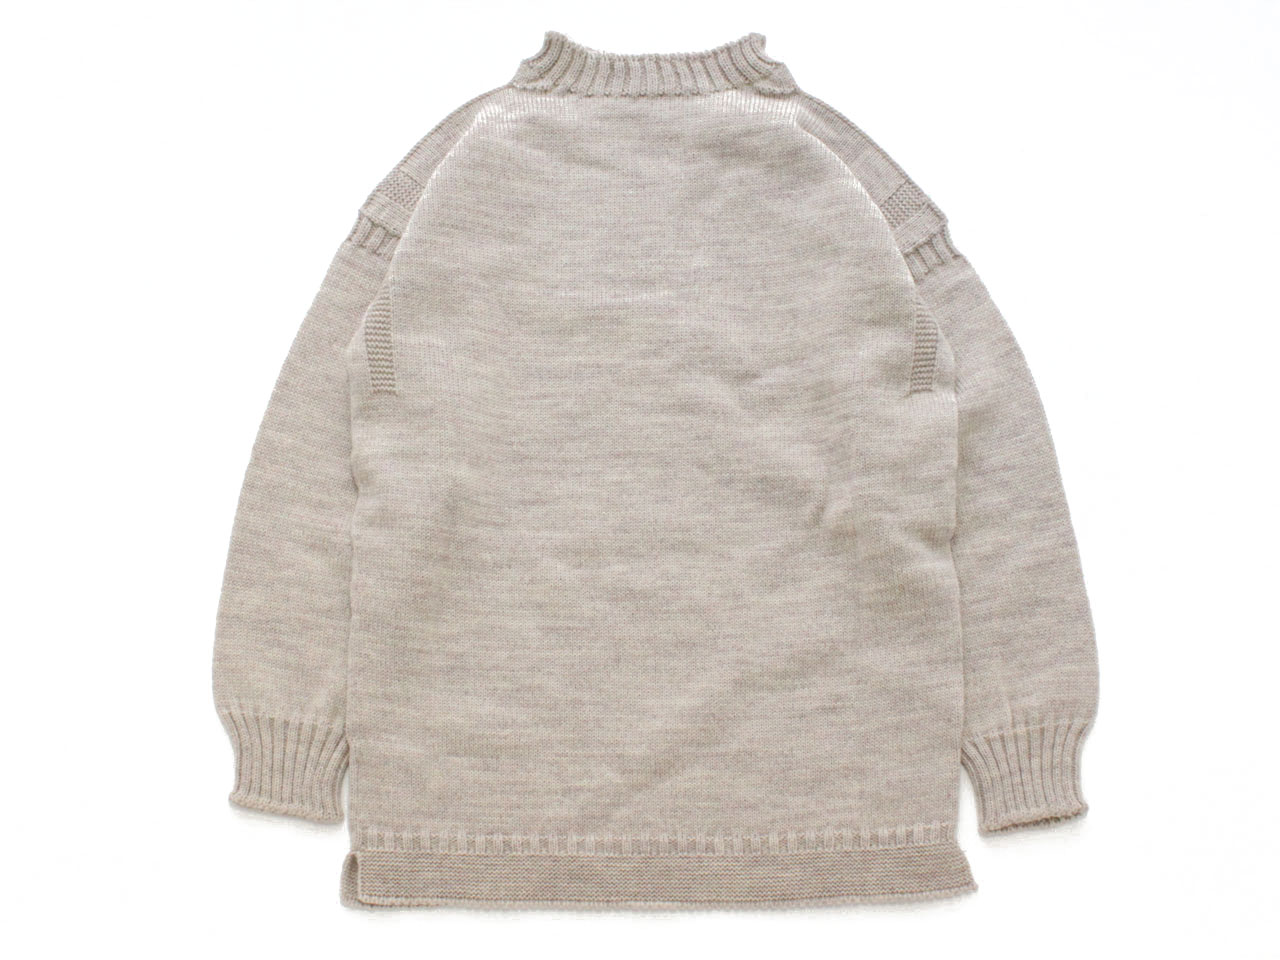 GUERNSEY WOOLLENS【ガンジーウーレンズ】GUERNSEY TRADITIONAL *OATMEAL